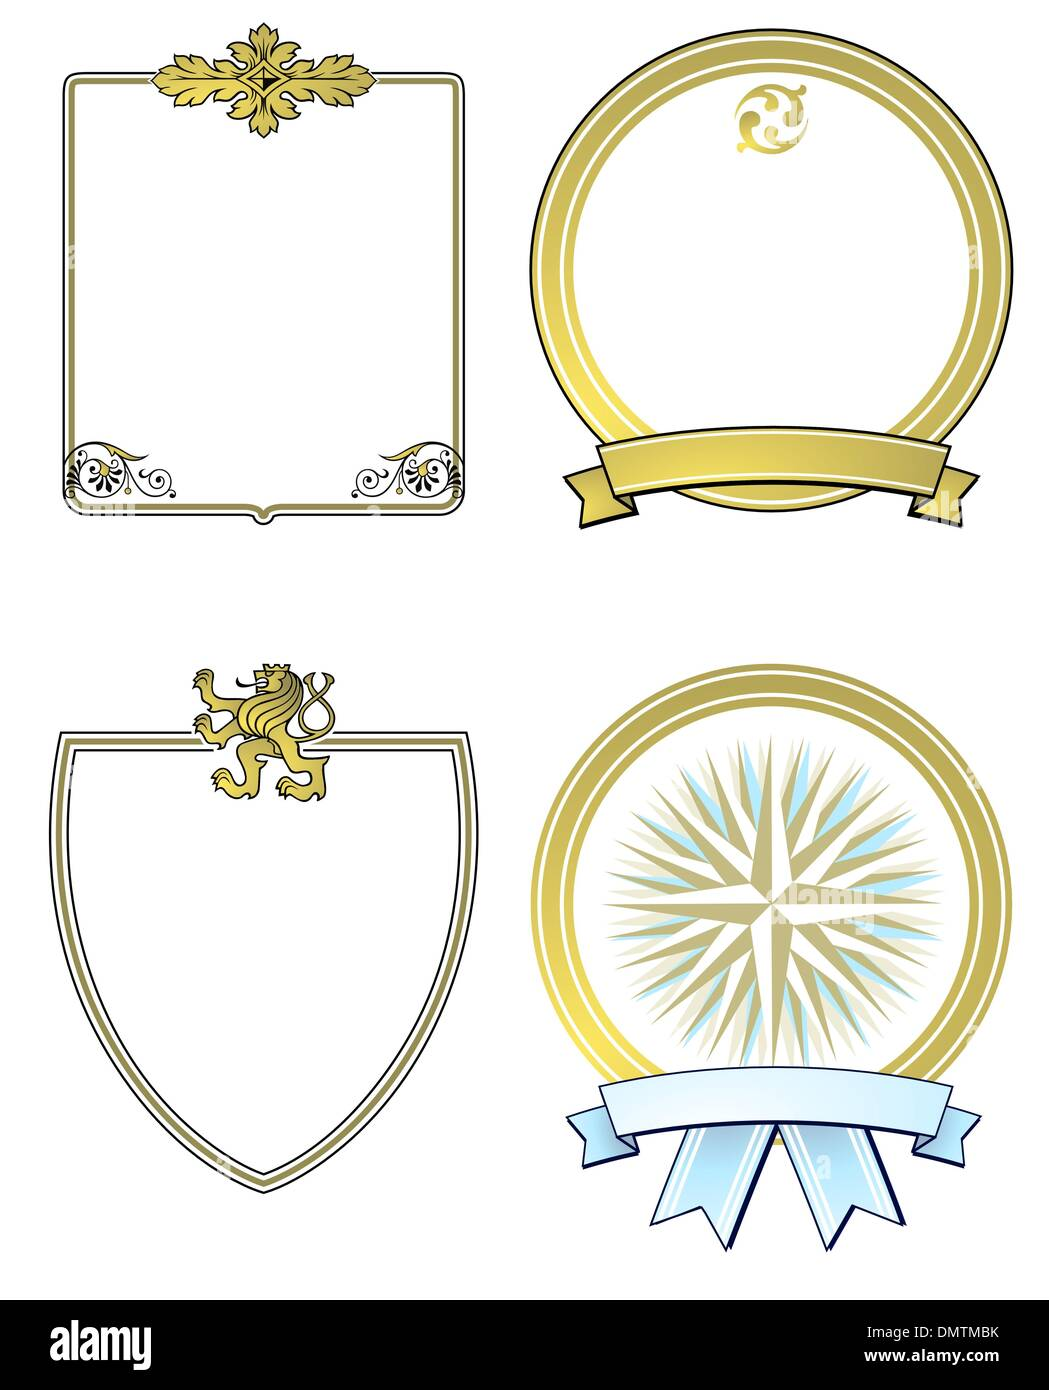 label and aristocratic shields, gold - Stock Image